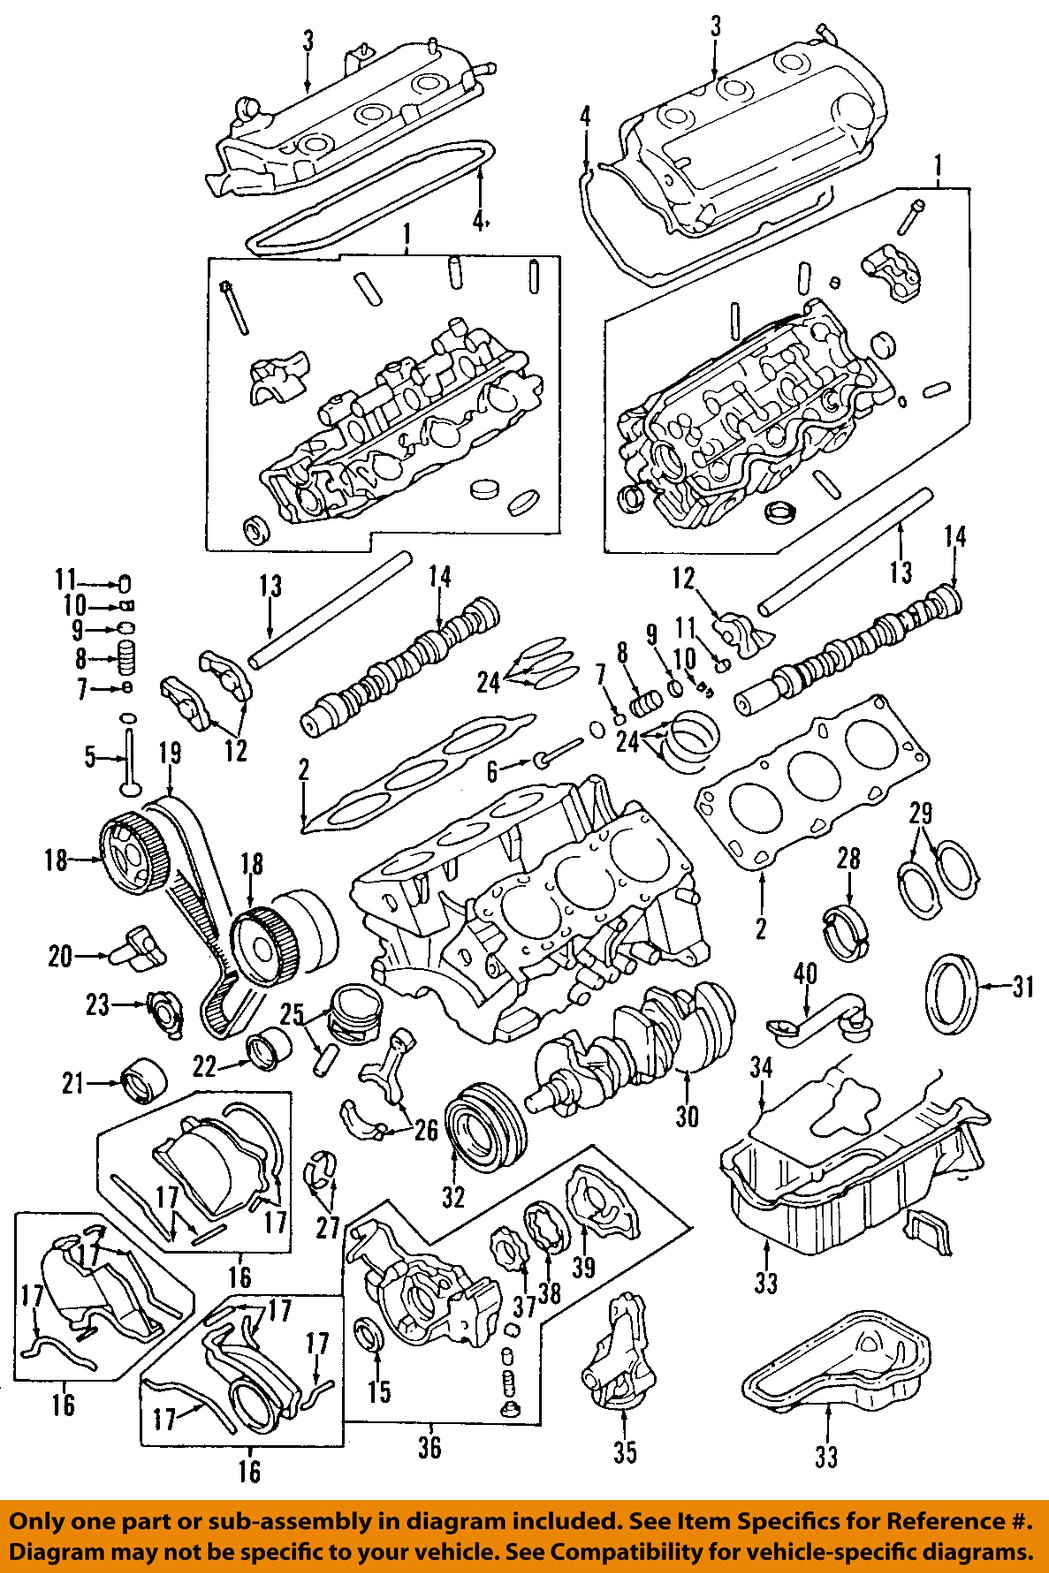 1994 Mitsubishi Montero Engine Diagram Free Wiring For You 2003 Eclipse Sport Simple Rh 8 26 32 Datschmeckt De